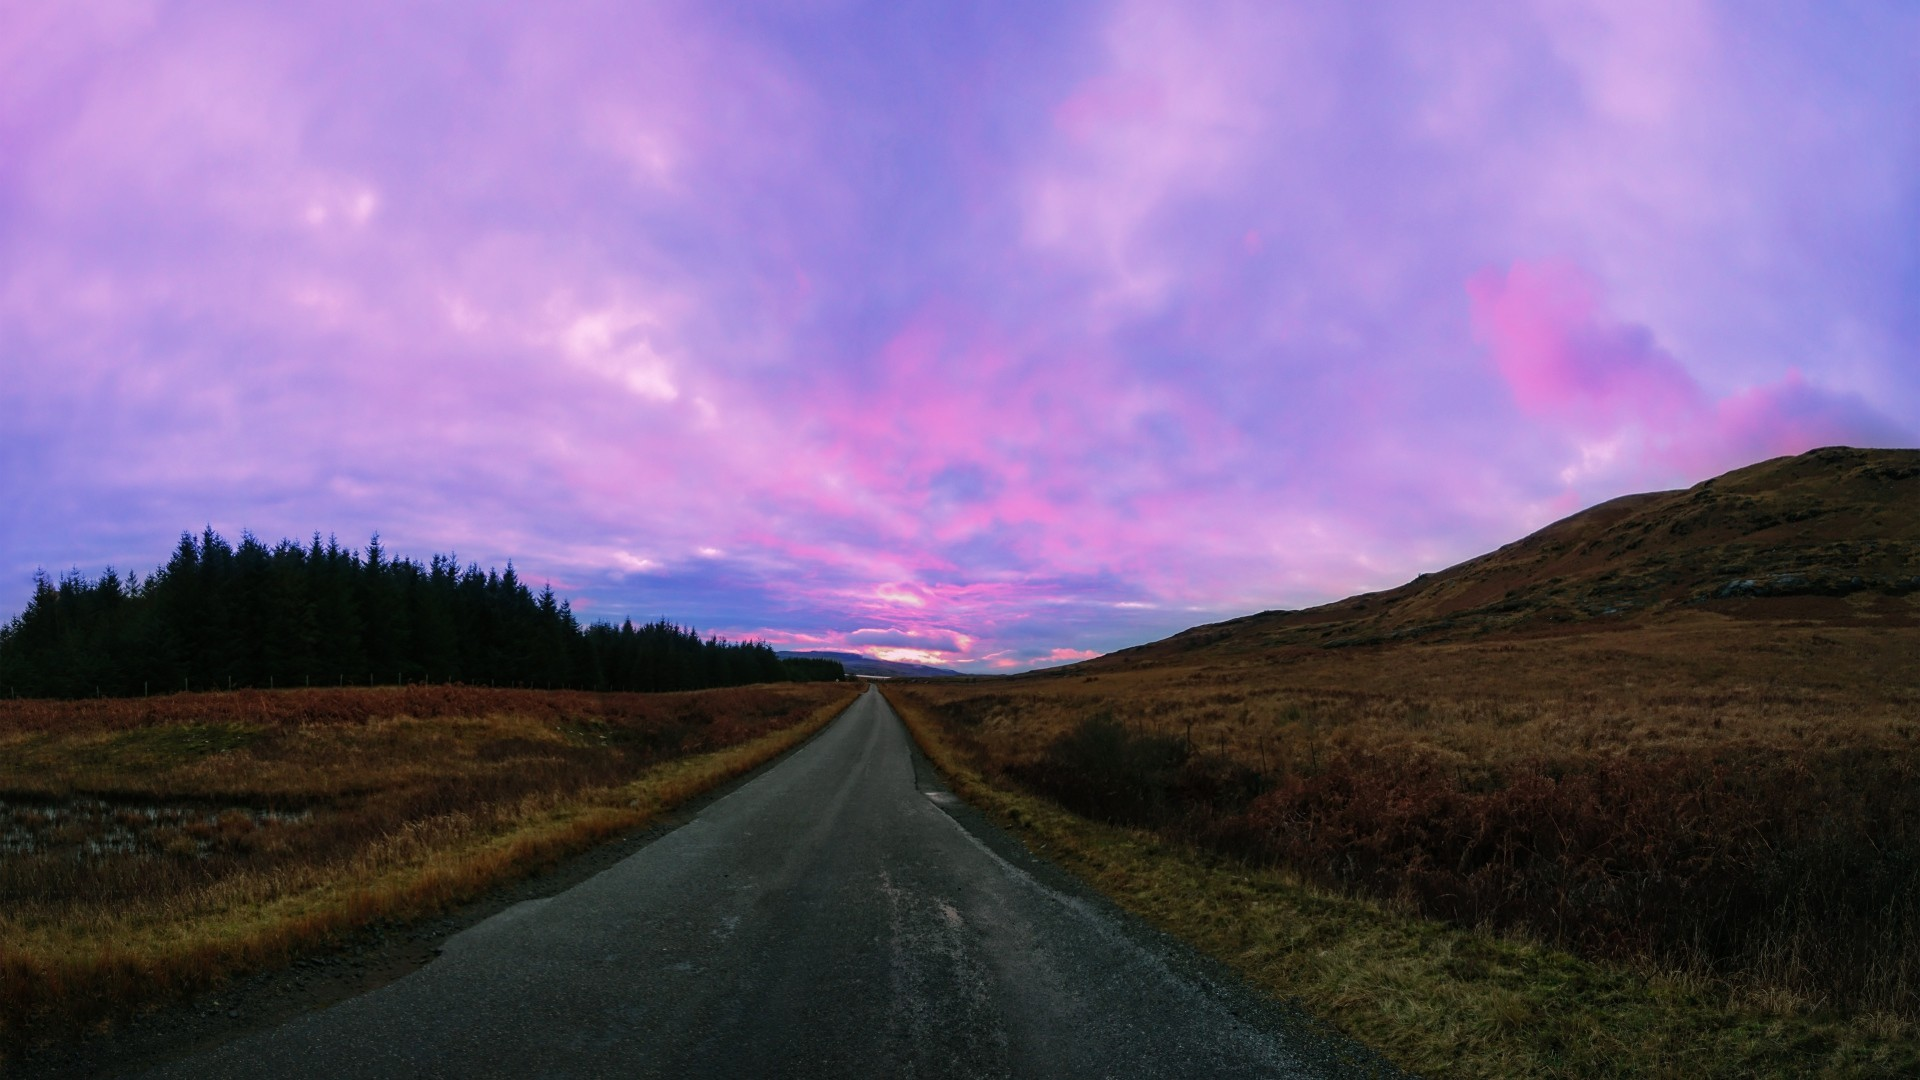 Download now full hd wallpaper highway pink sky Iceland in screen  resolution 1920×1080.